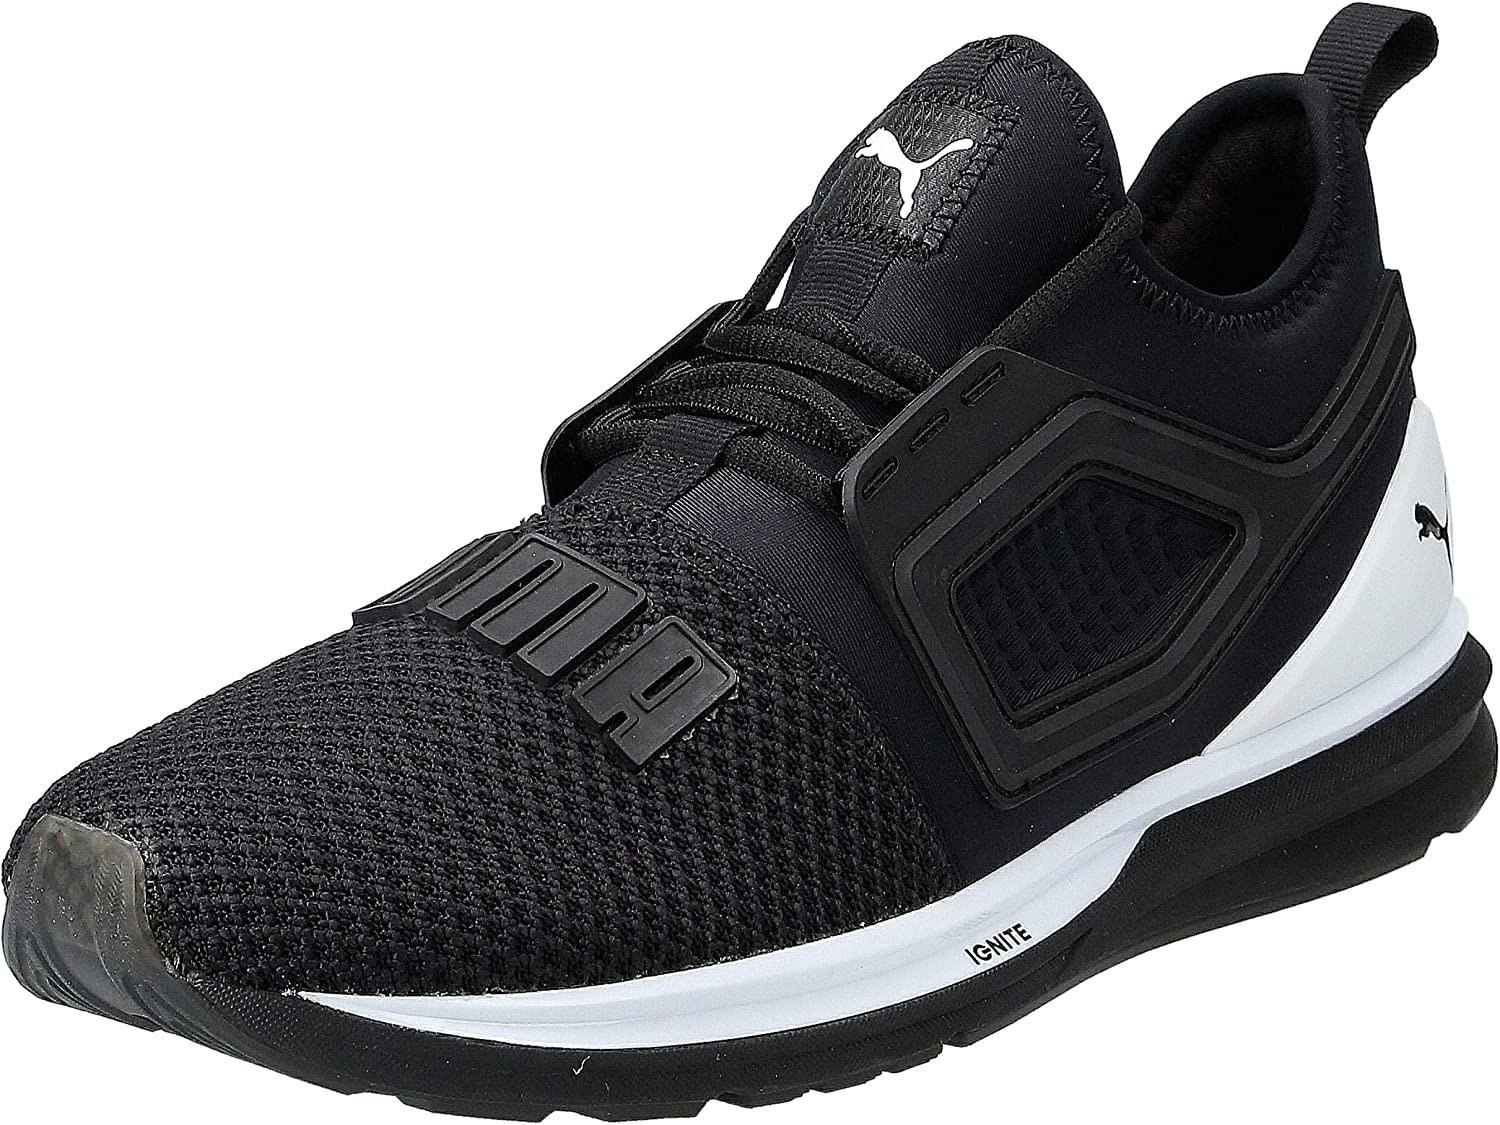 Puma Ignite Limitless 2, Zapatillas de Running Unisex Adulto: Amazon.es: Zapatos y complementos